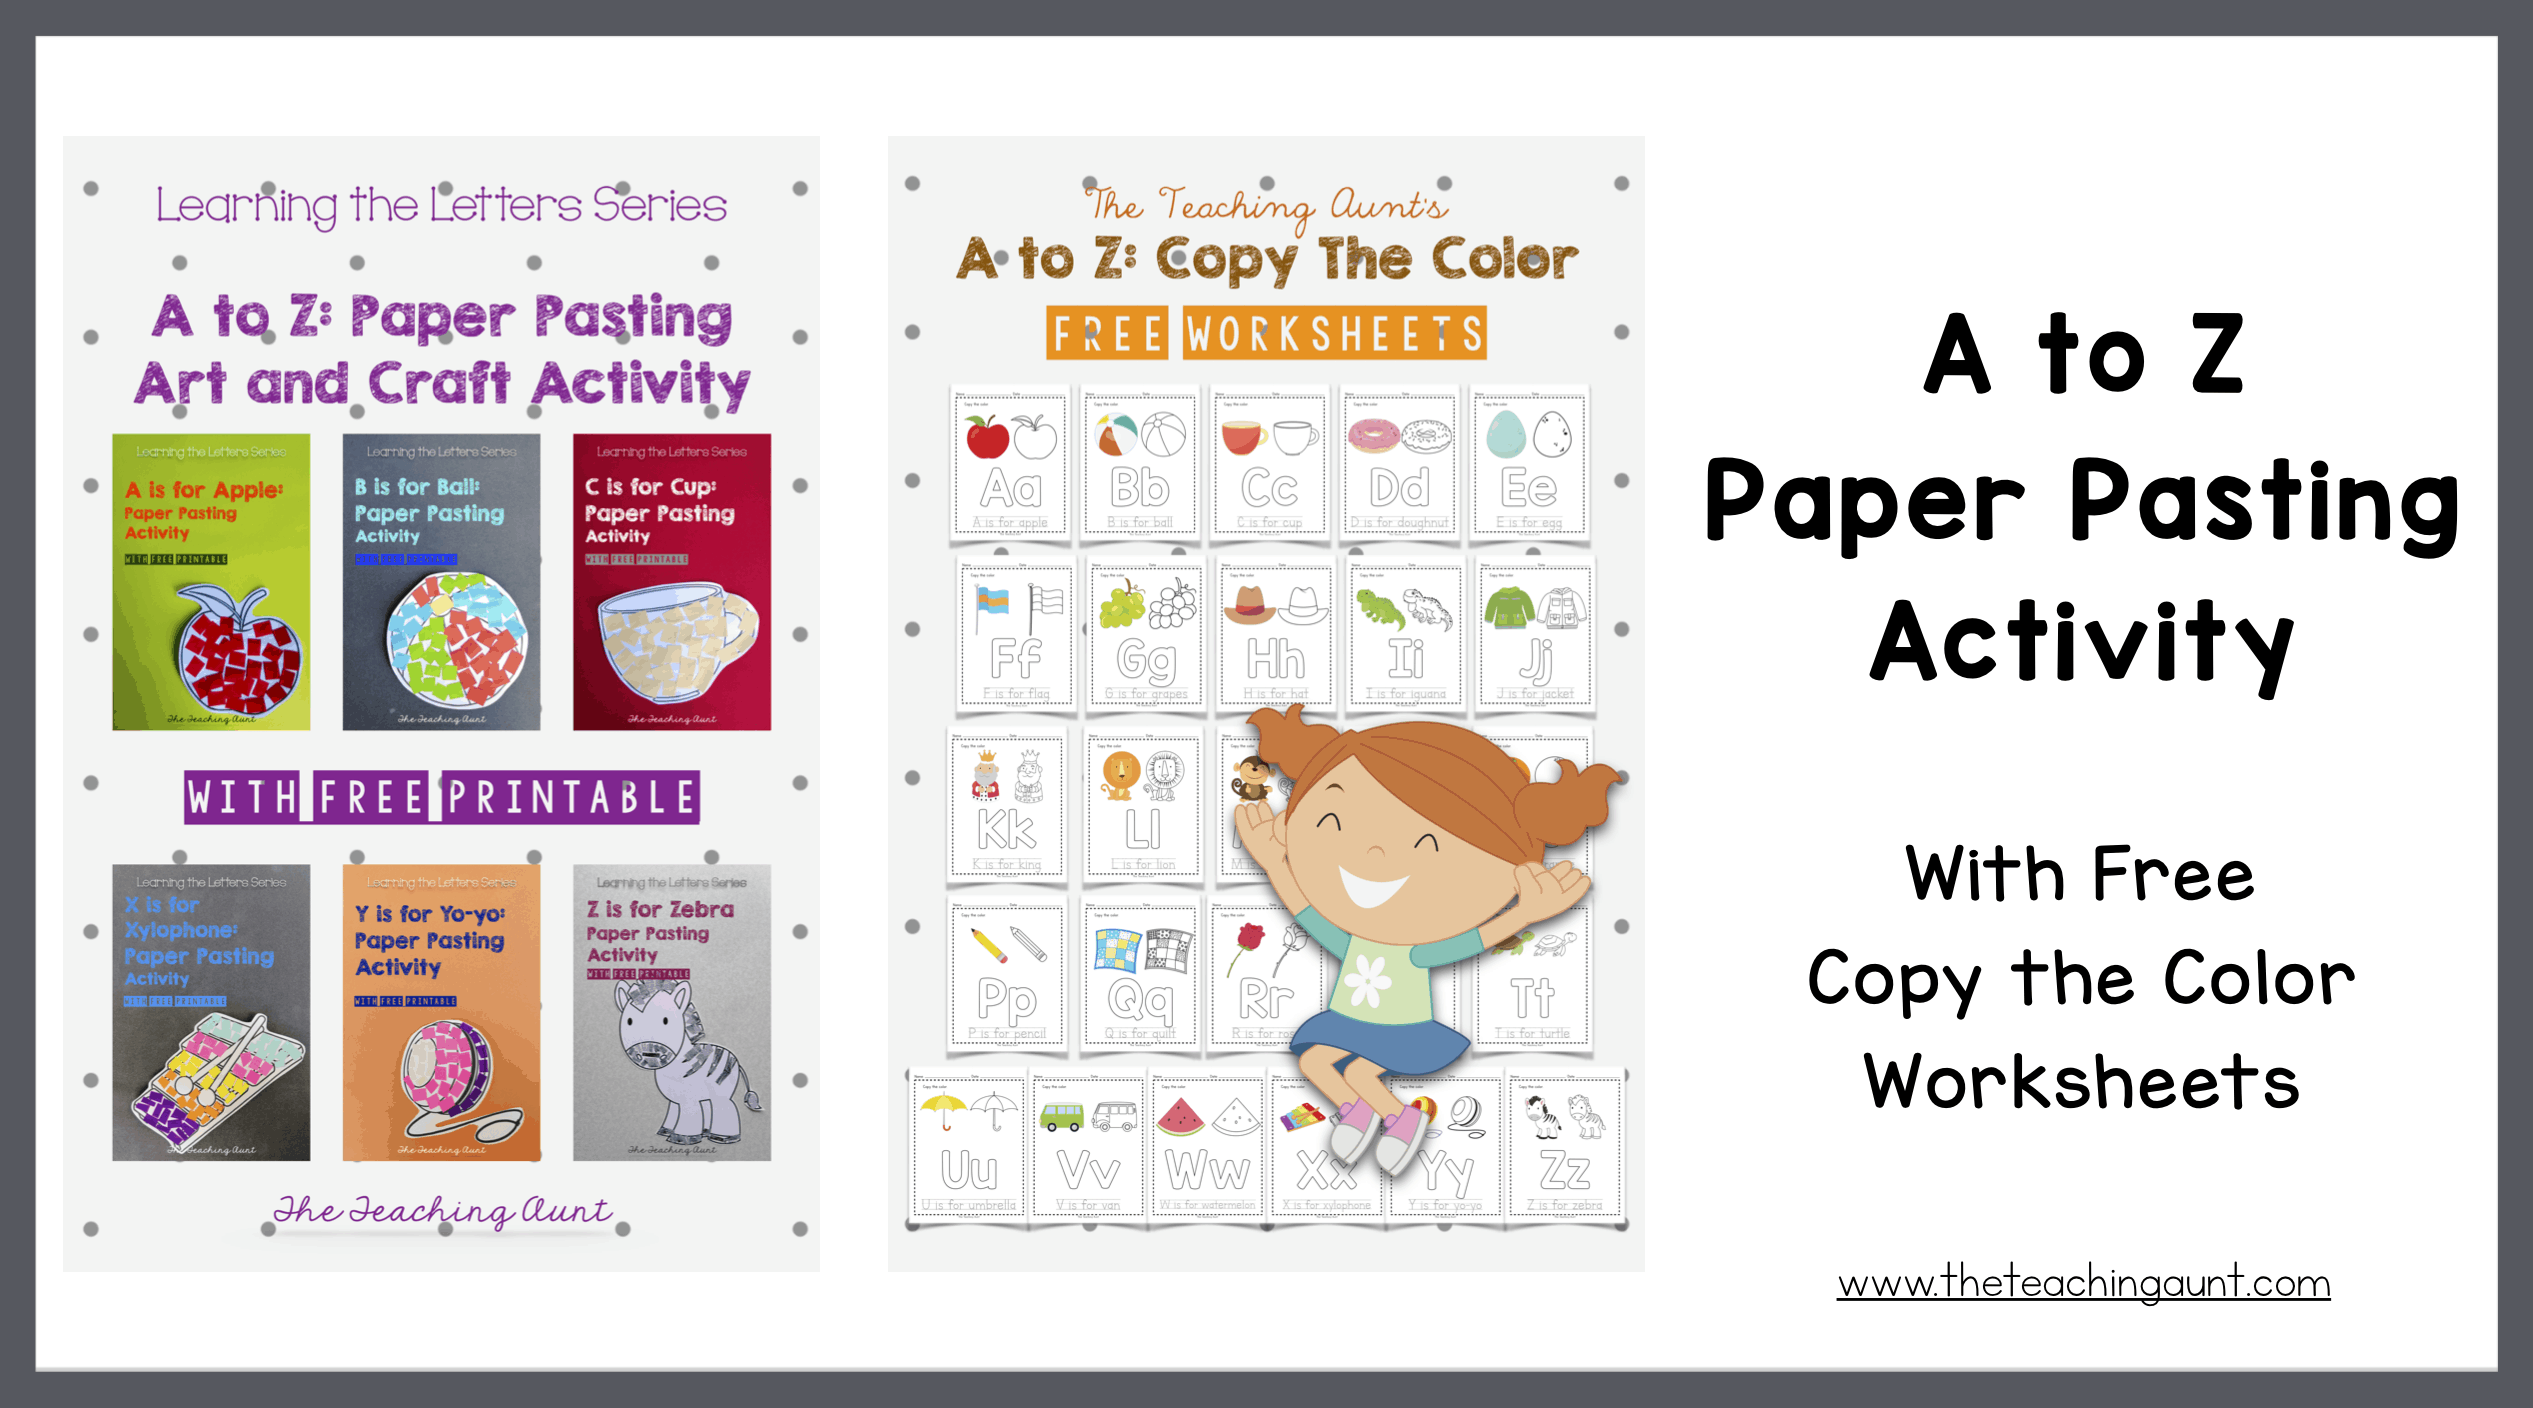 A to Z Paper Pasting Activity